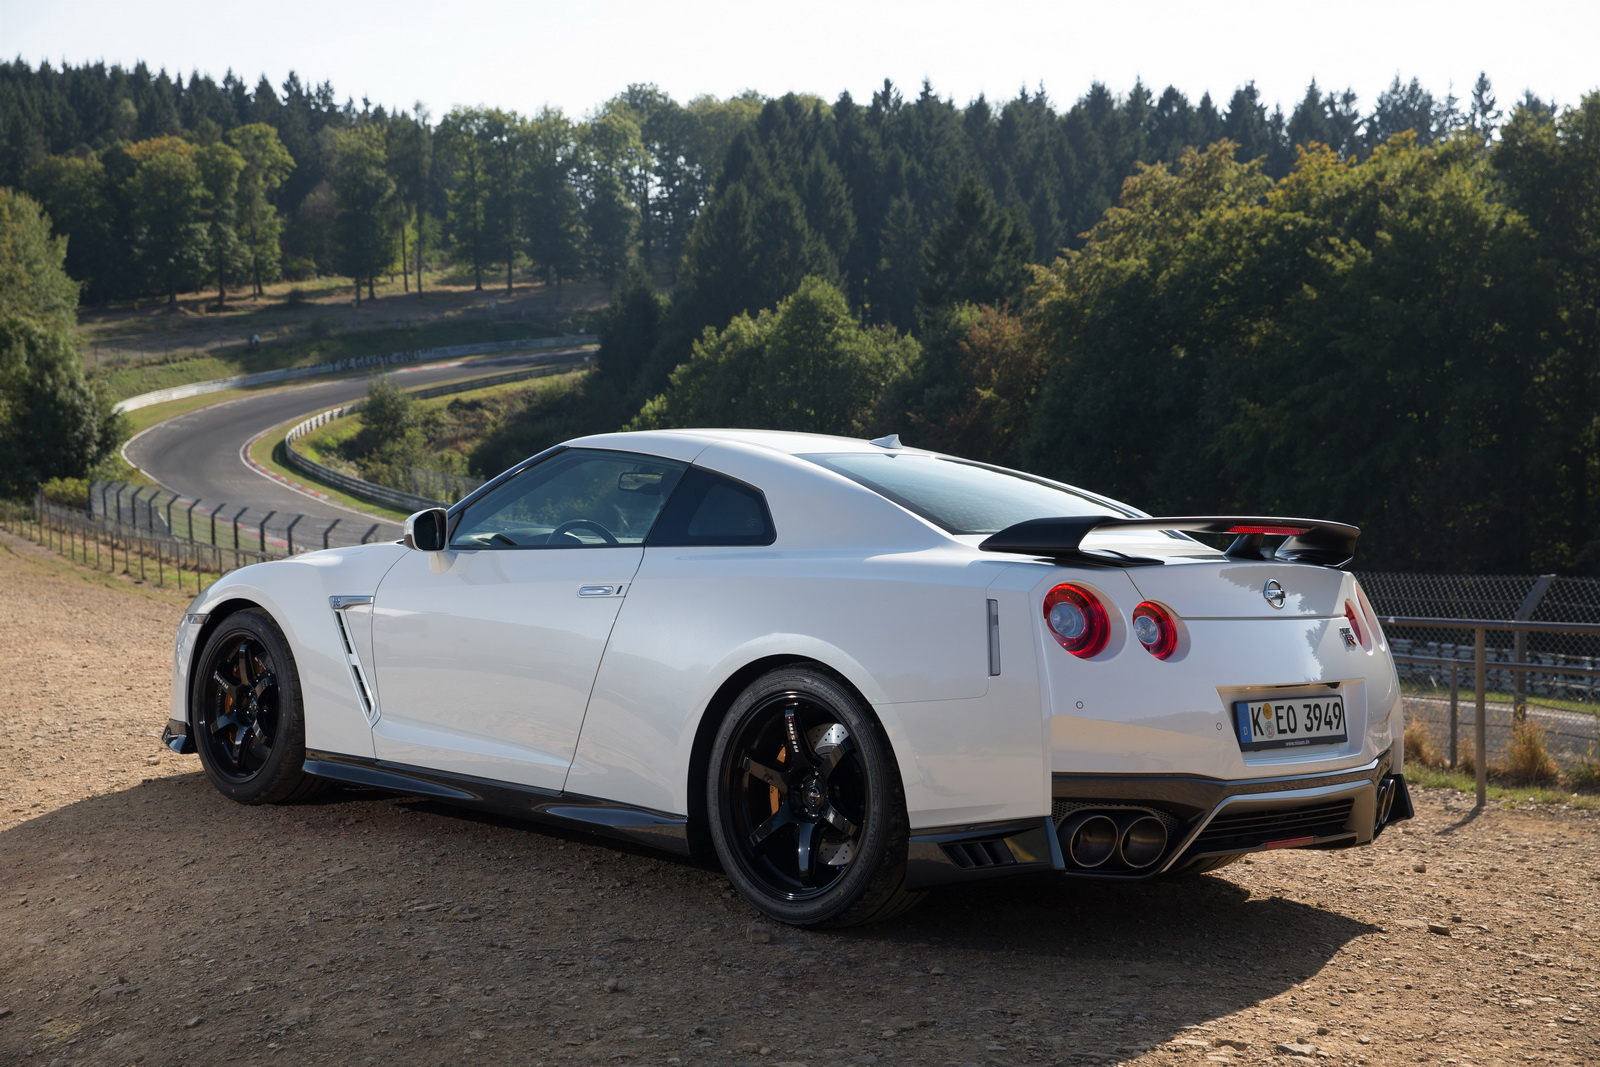 Meet The 2017 Nissan GT-R Track Edition - Exotic Car List